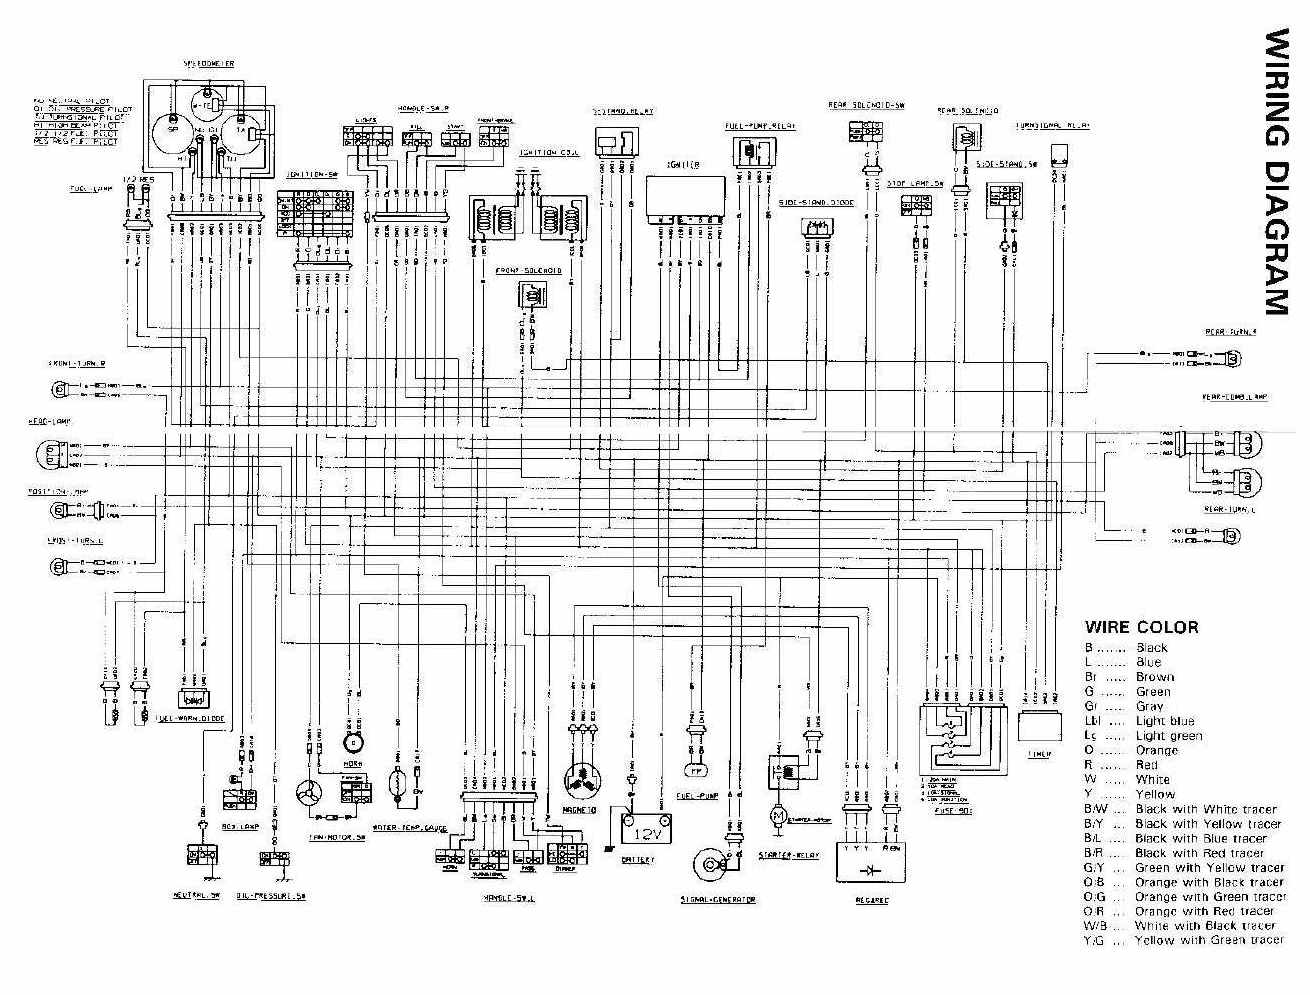 suzuki intruder 1400 wiring diagram 15 19 artatec automobile de u2022 [ 1310 x 995 Pixel ]